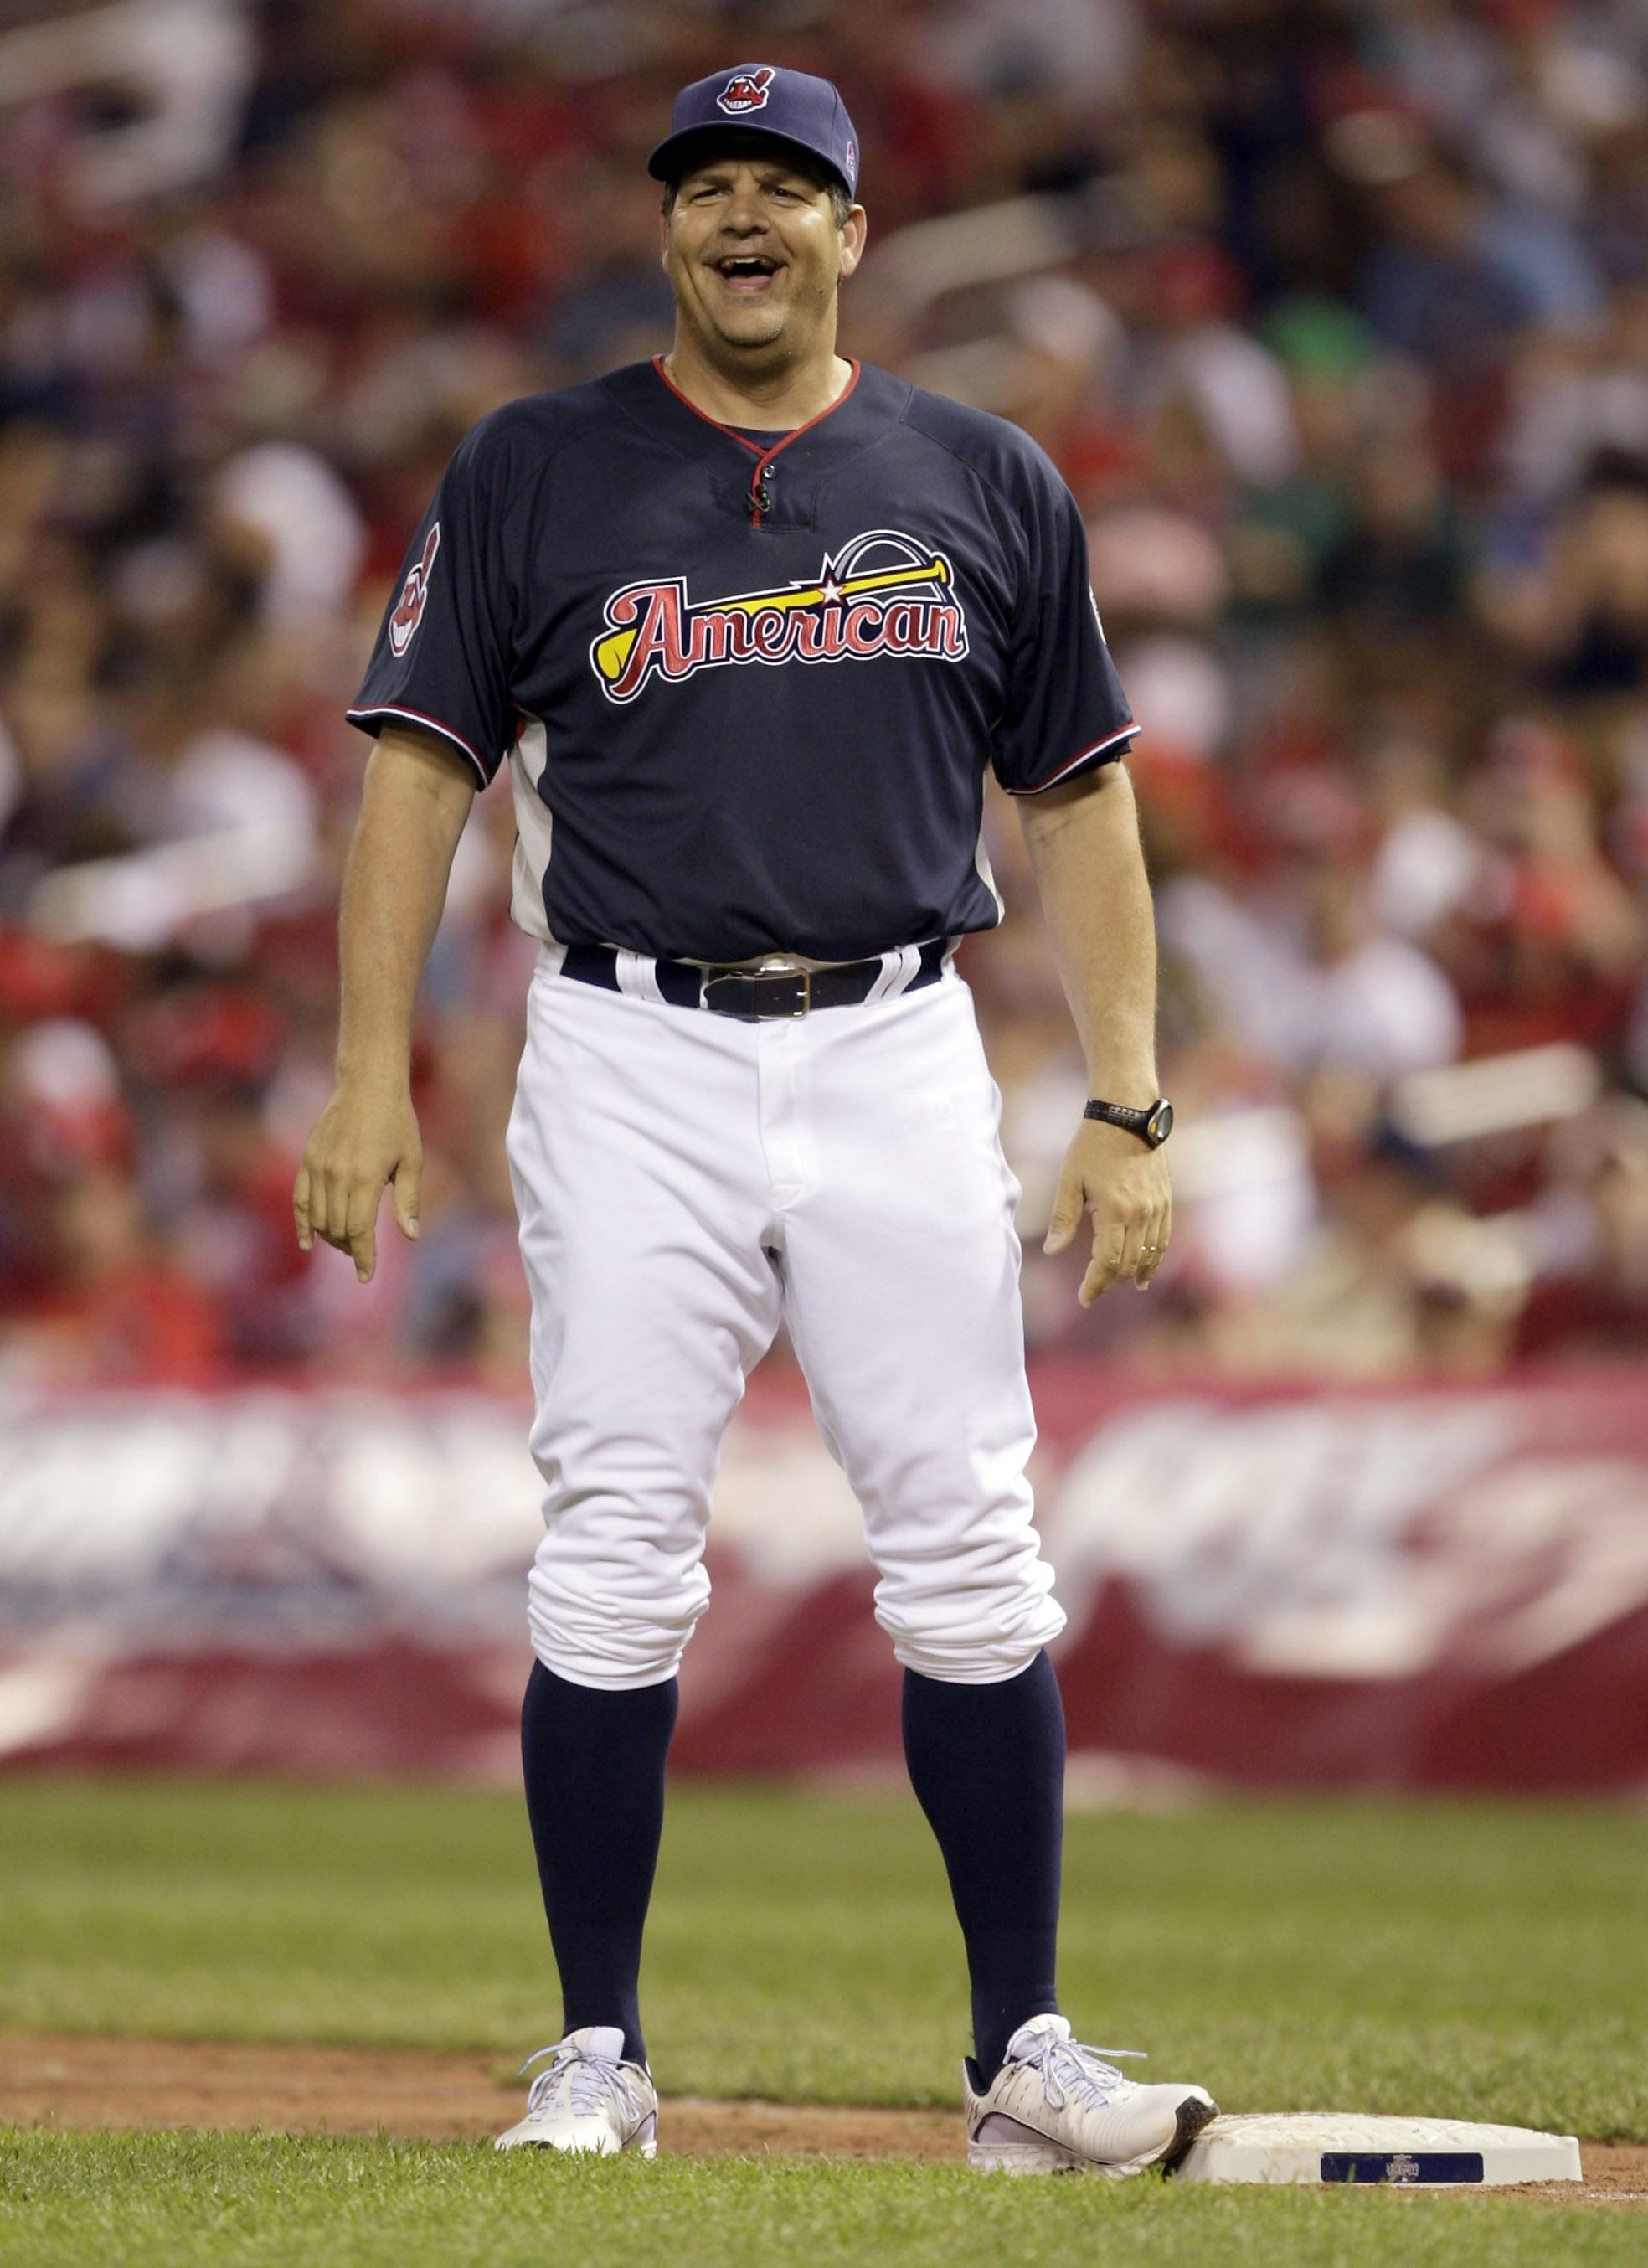 ST. LOUIS - JULY 12: TV personality Mike Golic stands on first base during the Taco Bell All-Star Legends & Celebrity Softball Game at Busch Stadium on July 12, 2009 in St. Louis, Missouri. (Photo by Jamie Squire/Getty Images)